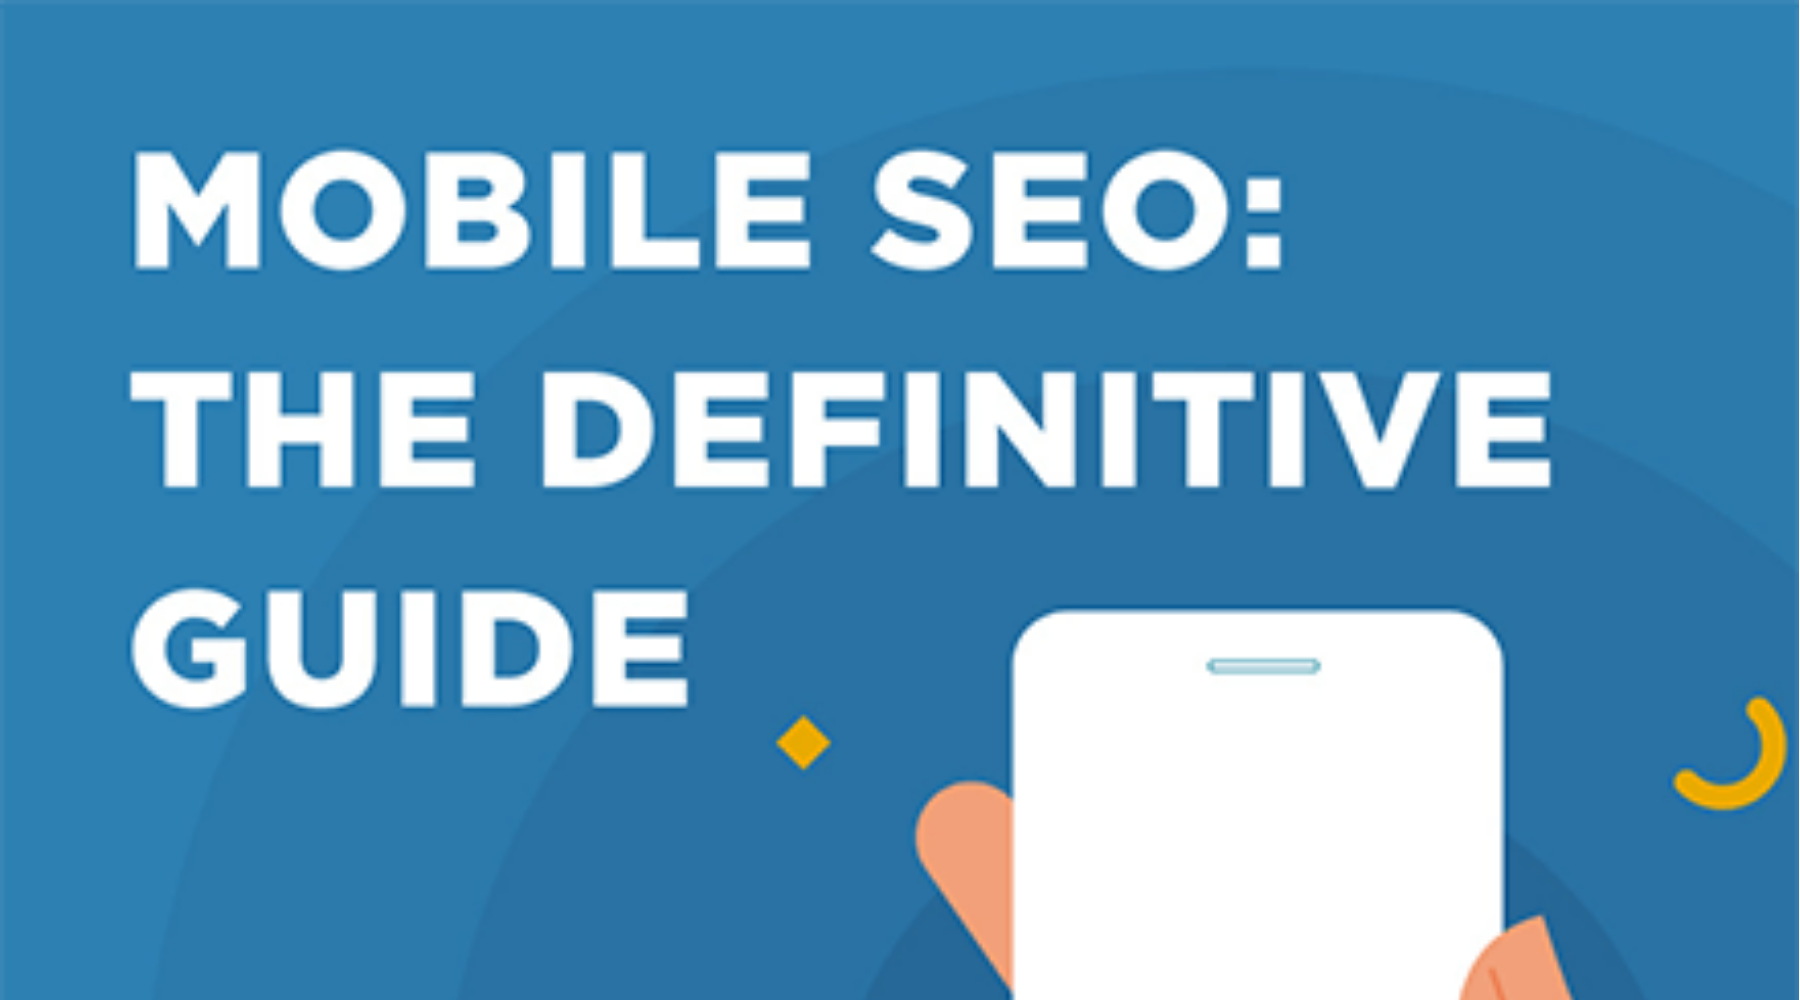 A COMPLETE List of Mobile SEO Blogs and Websites for Publishing Guest Posts